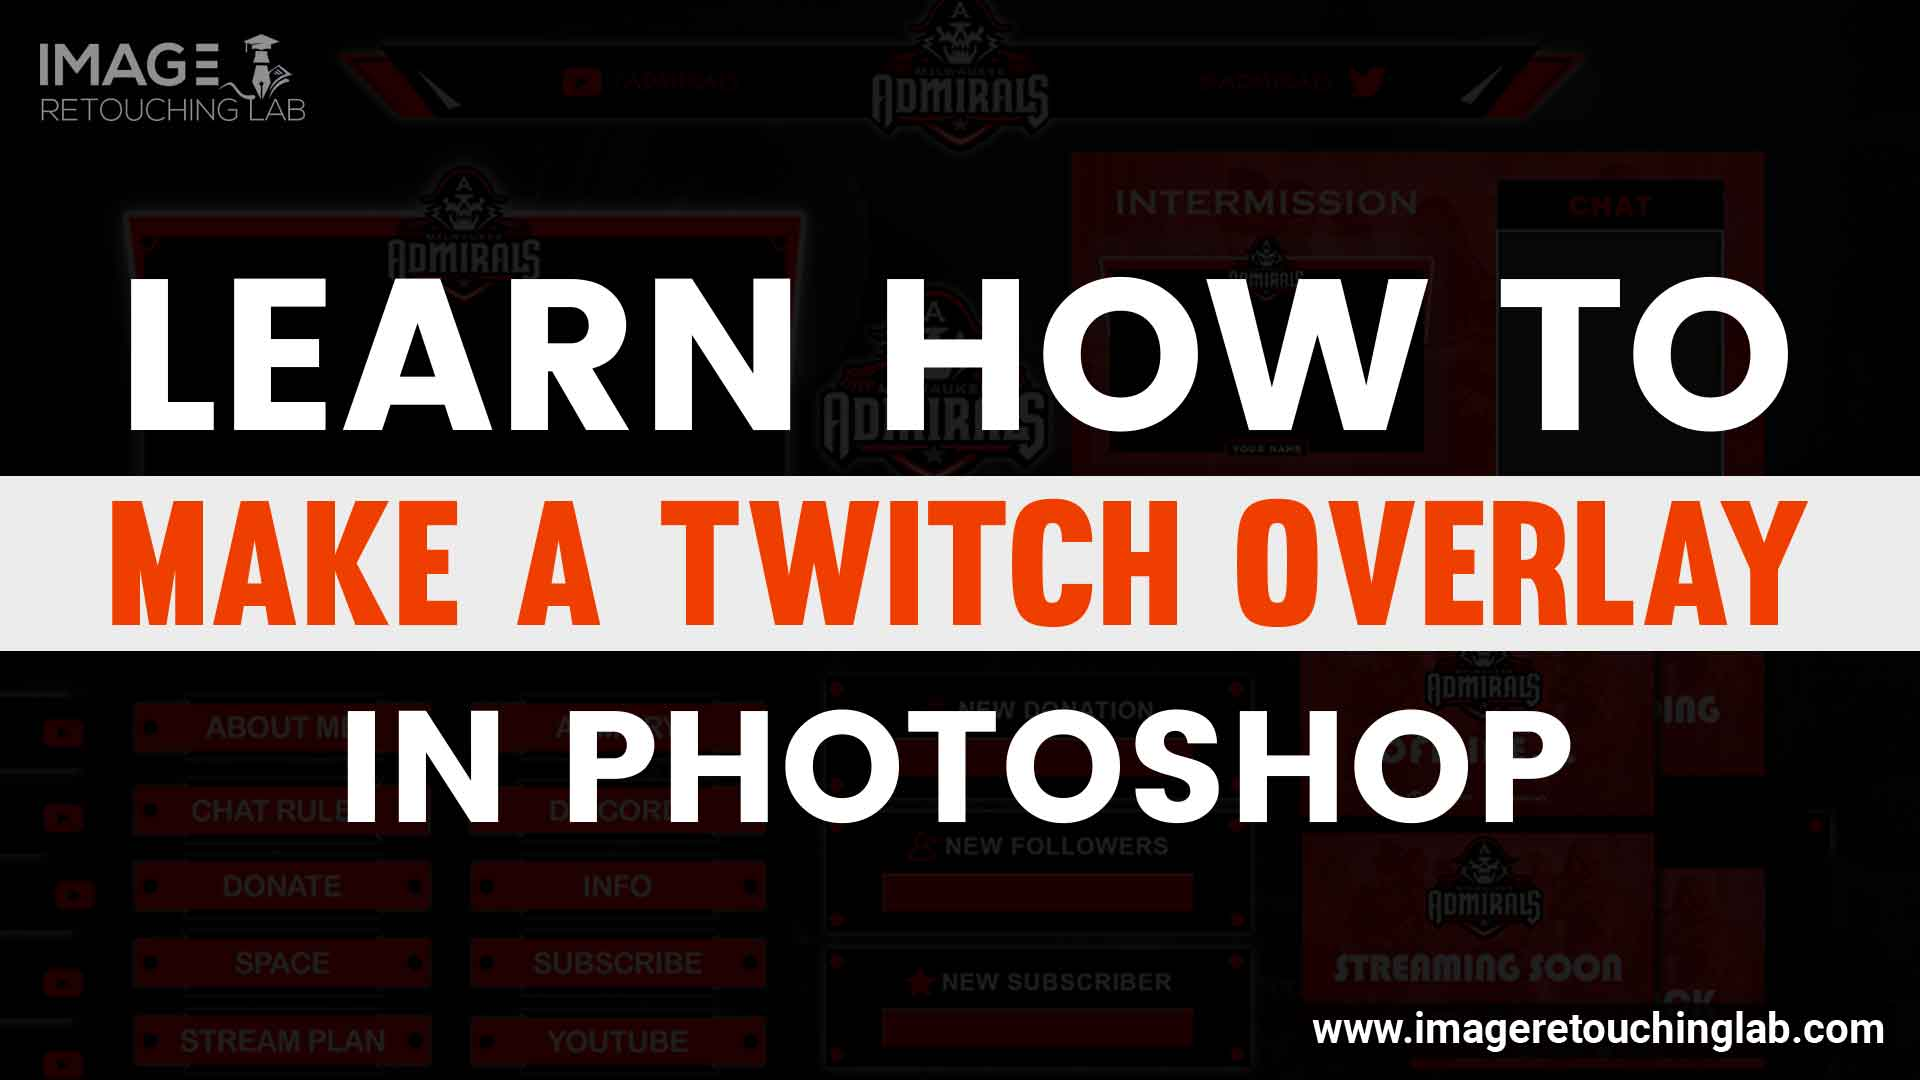 Learn How to Make a Twitch Overlay in Photoshop